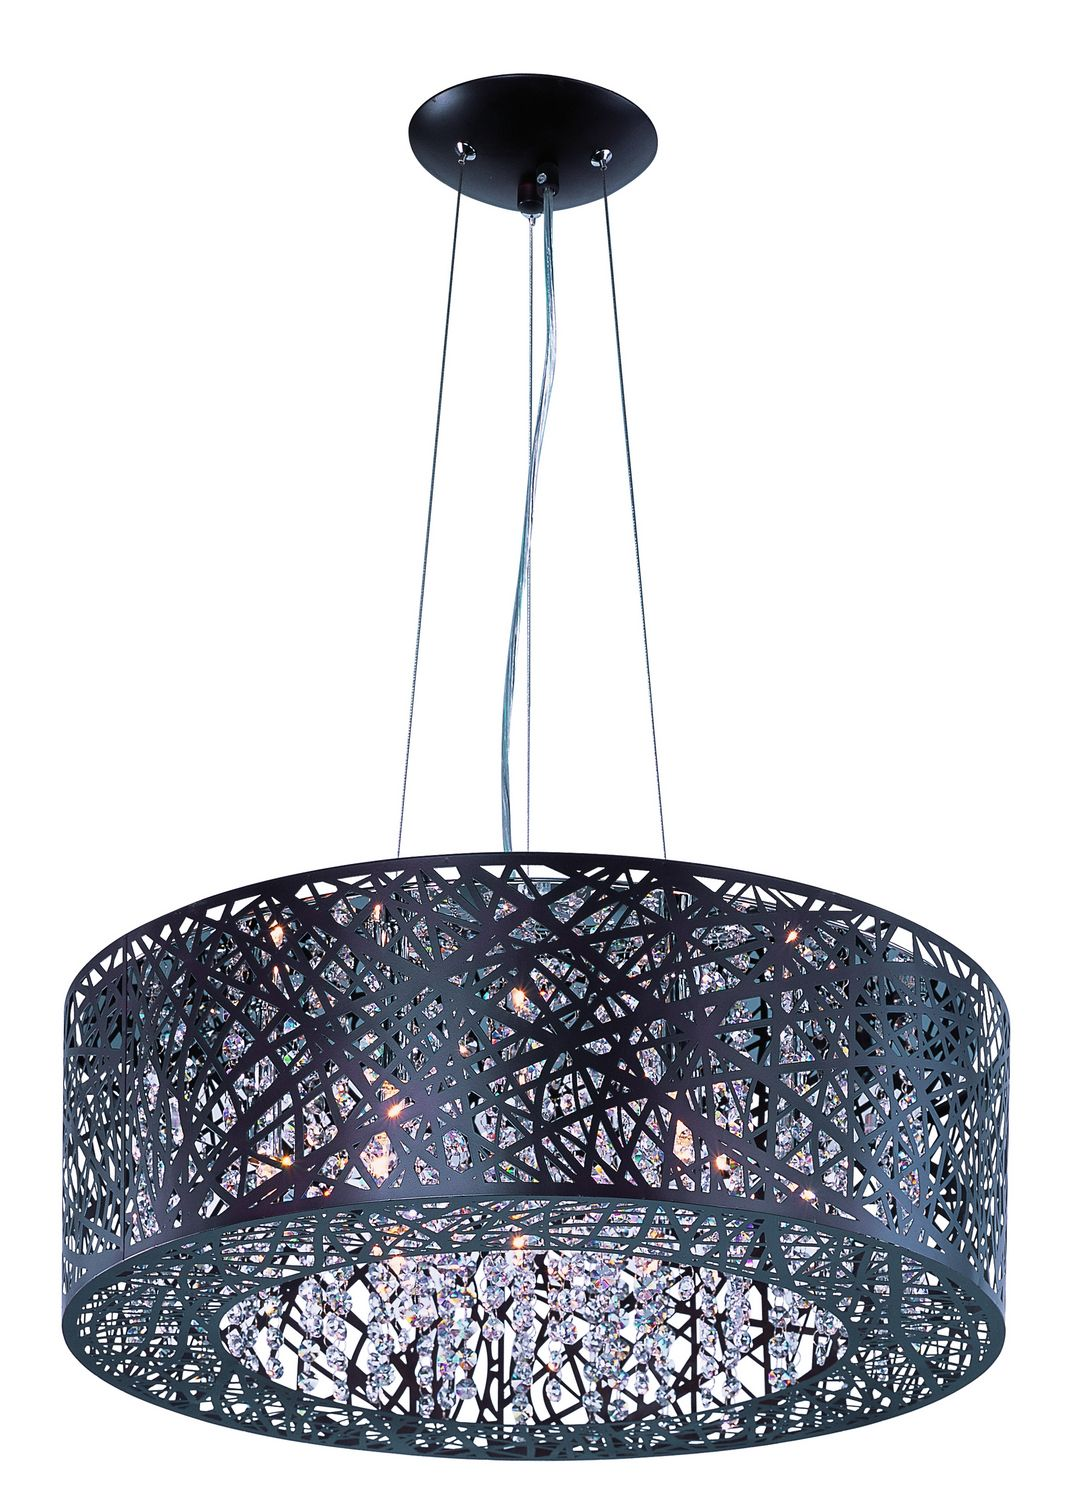 Nine Light Pendant, drum shade, bronze, crystal, contemporary chandelier, foyer, dining room